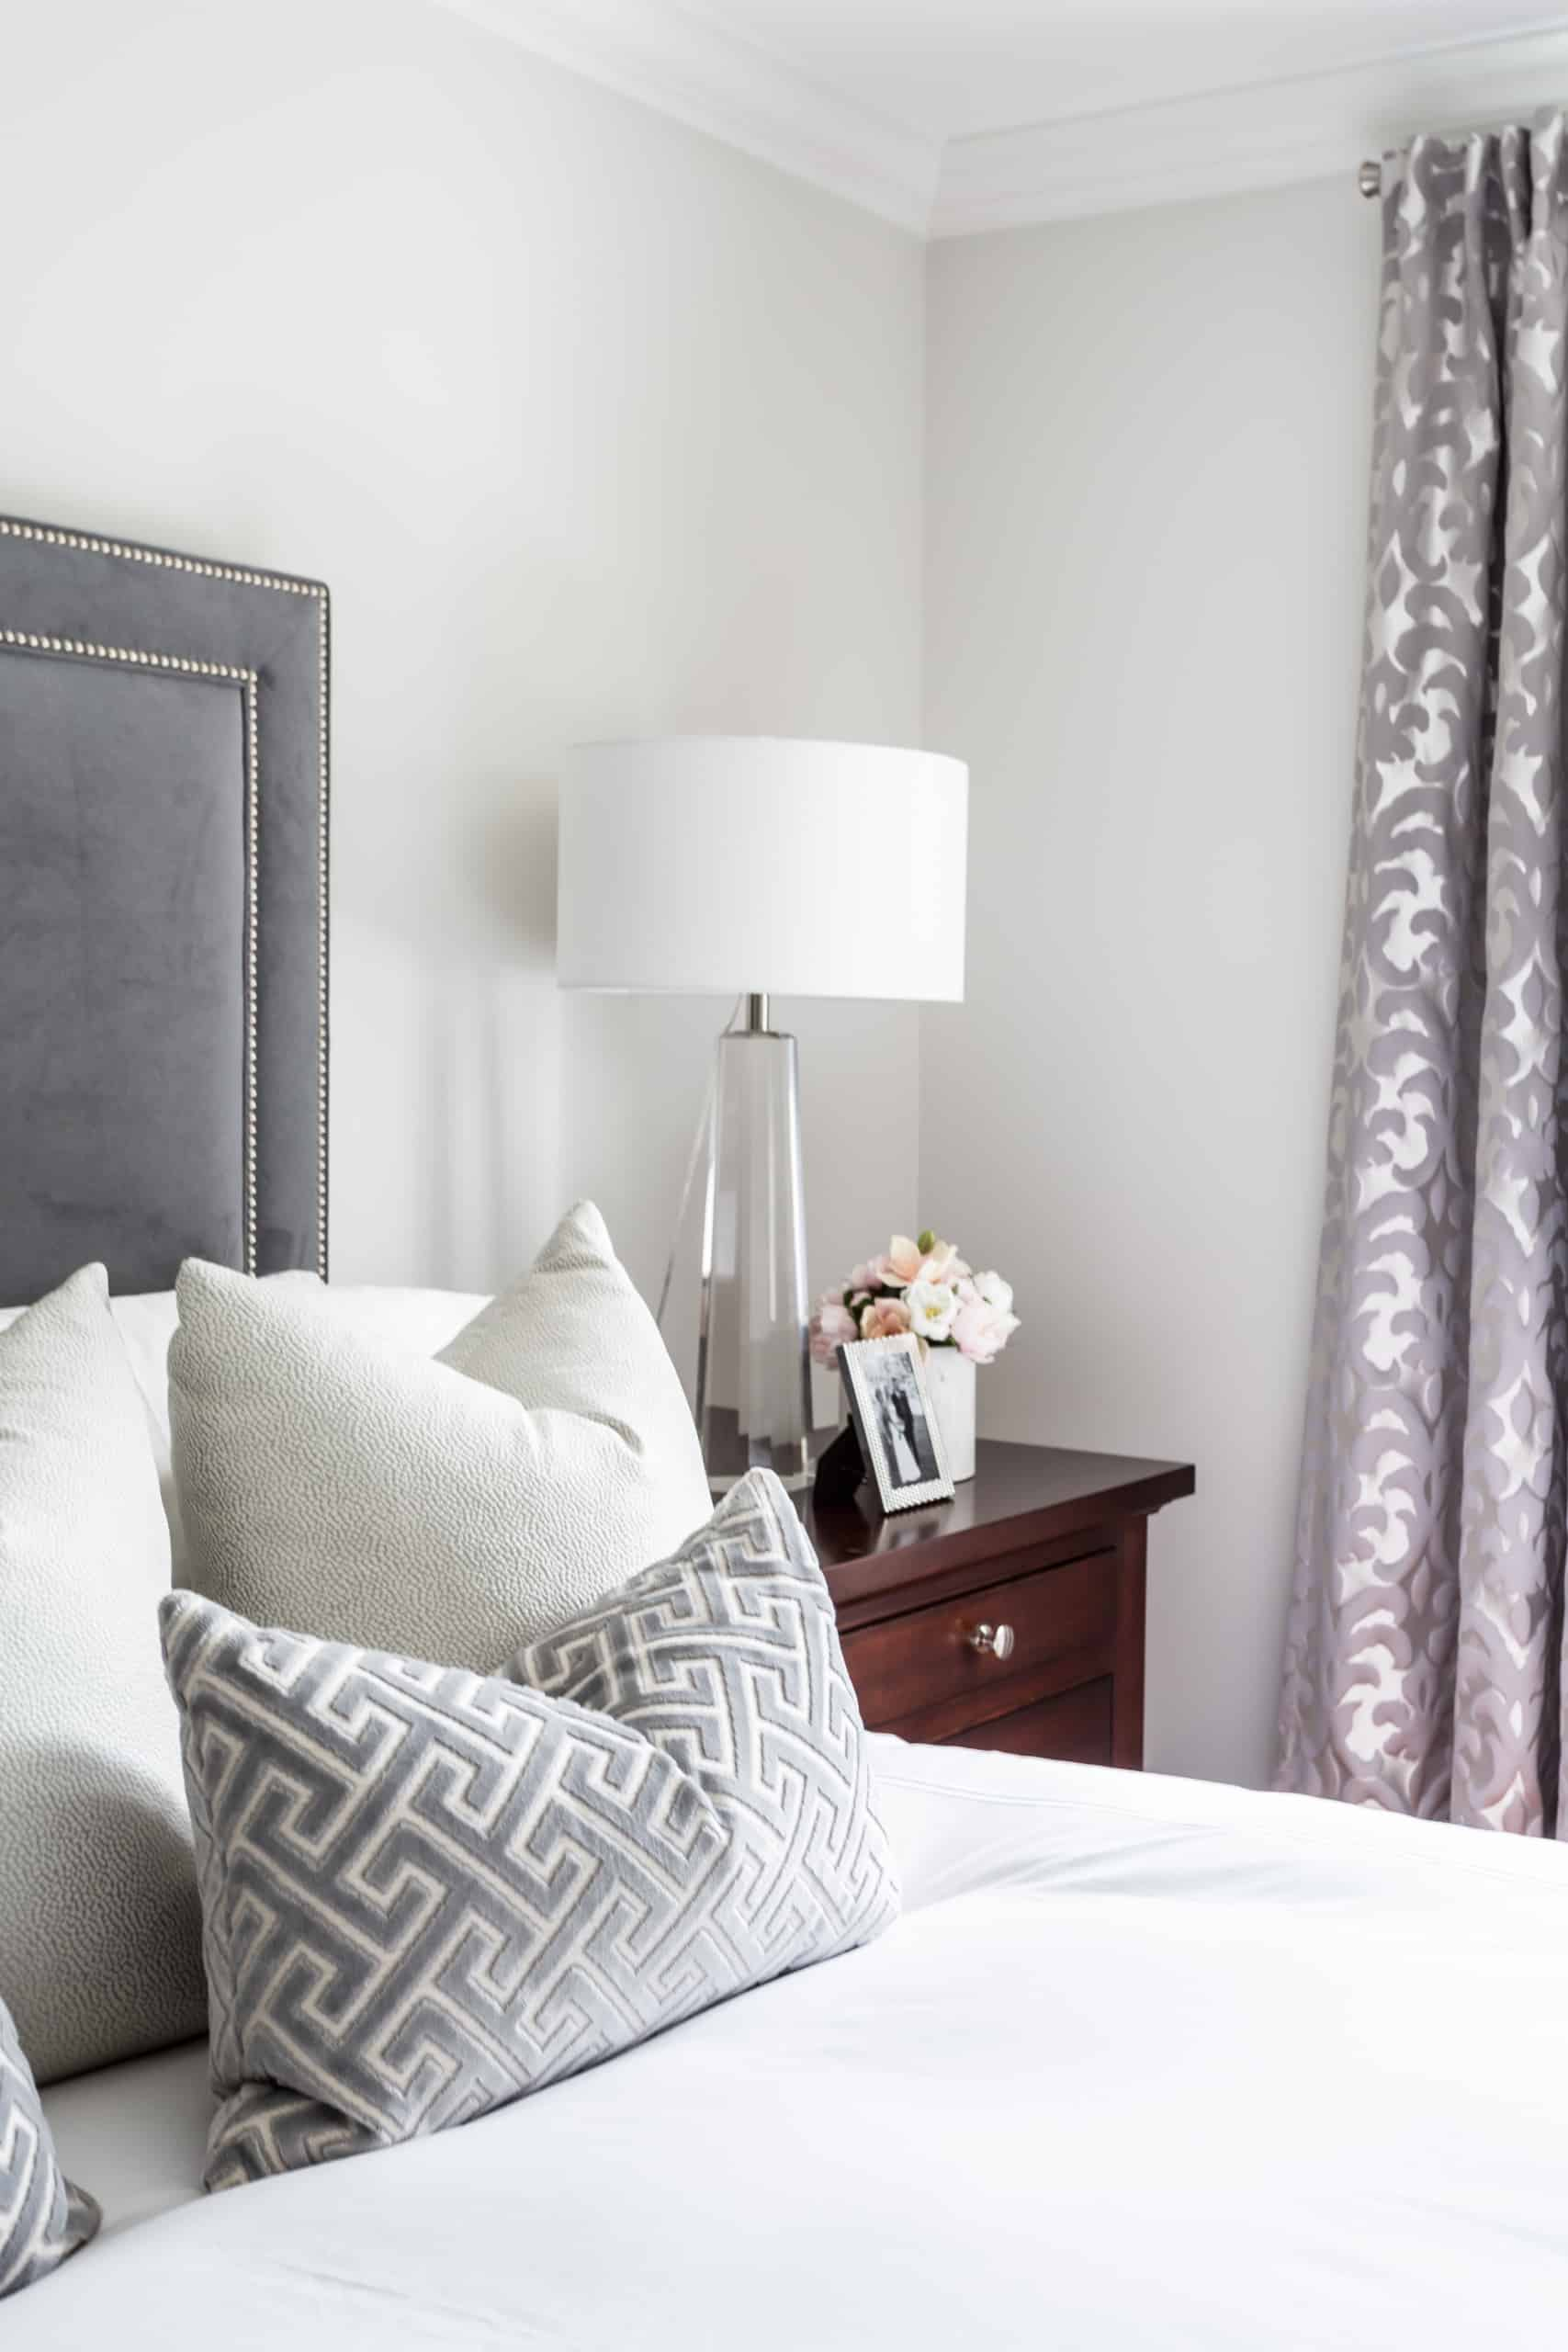 Array of white and gray pillows on a large white bed